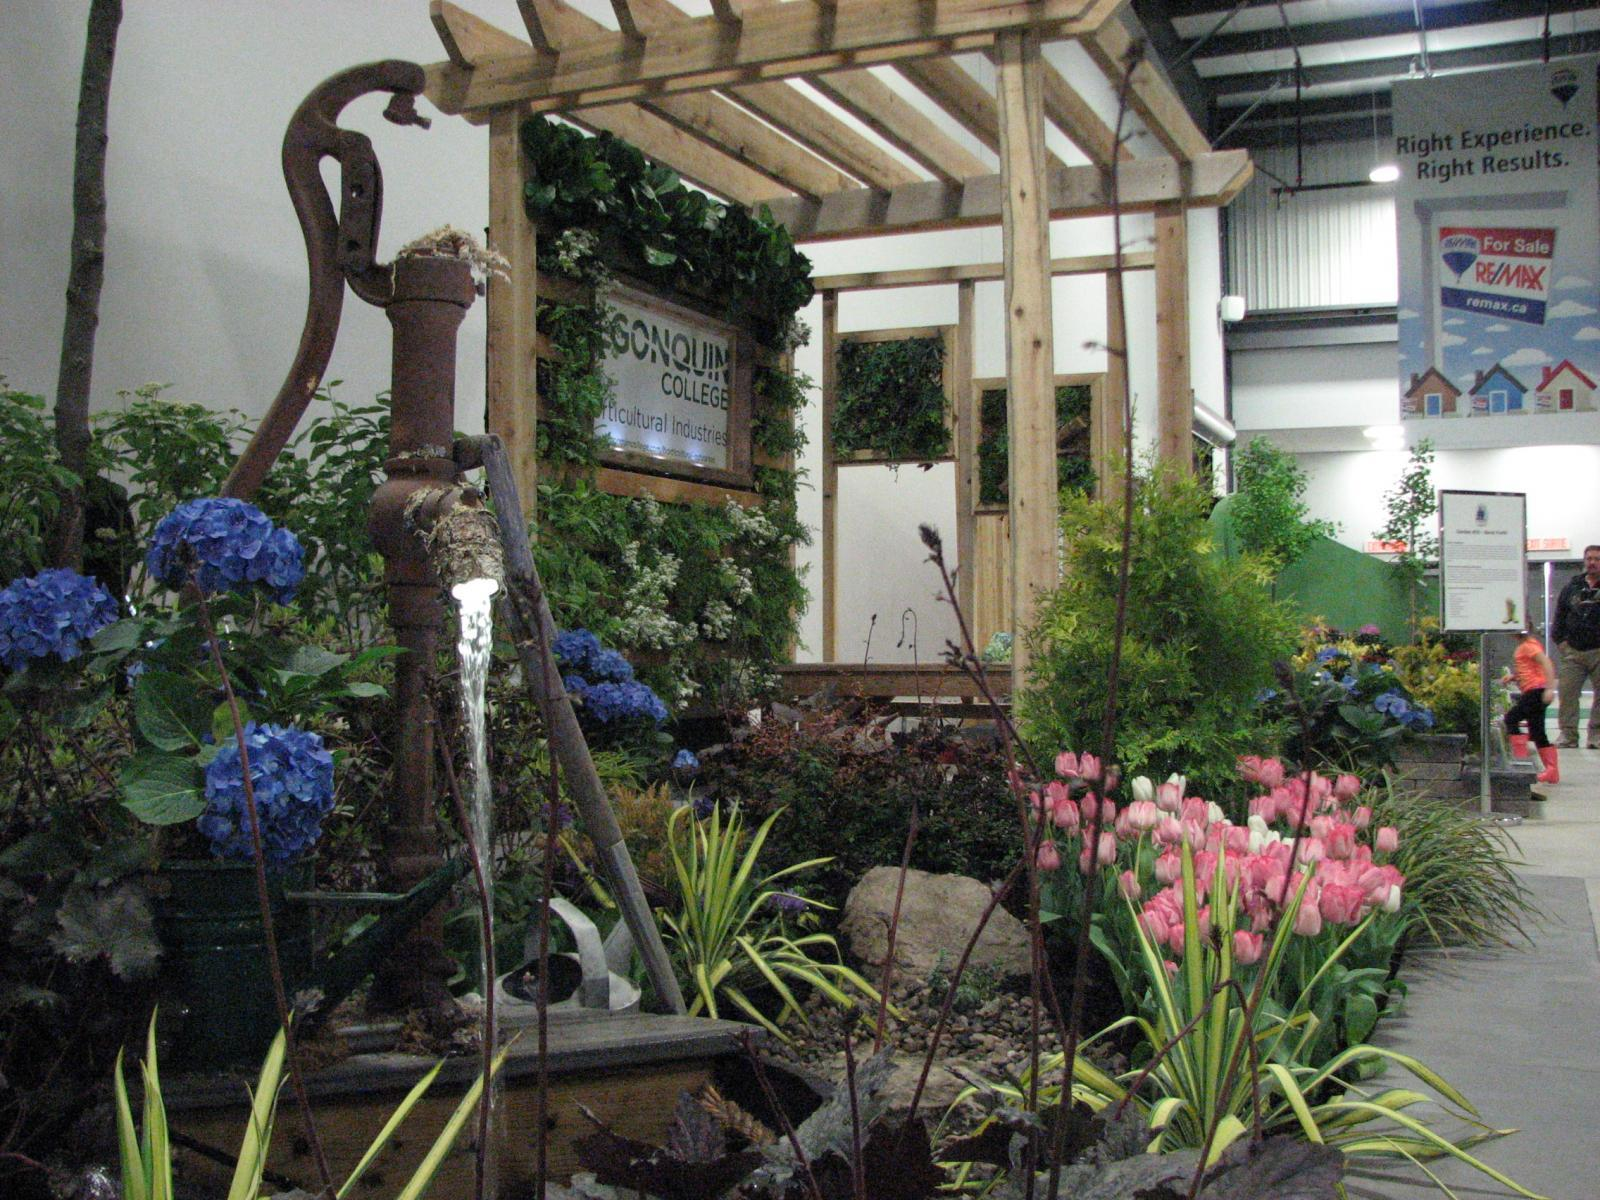 Landscape Ontario booth at Living Landscapes 2019 needs VOLUNTEERS